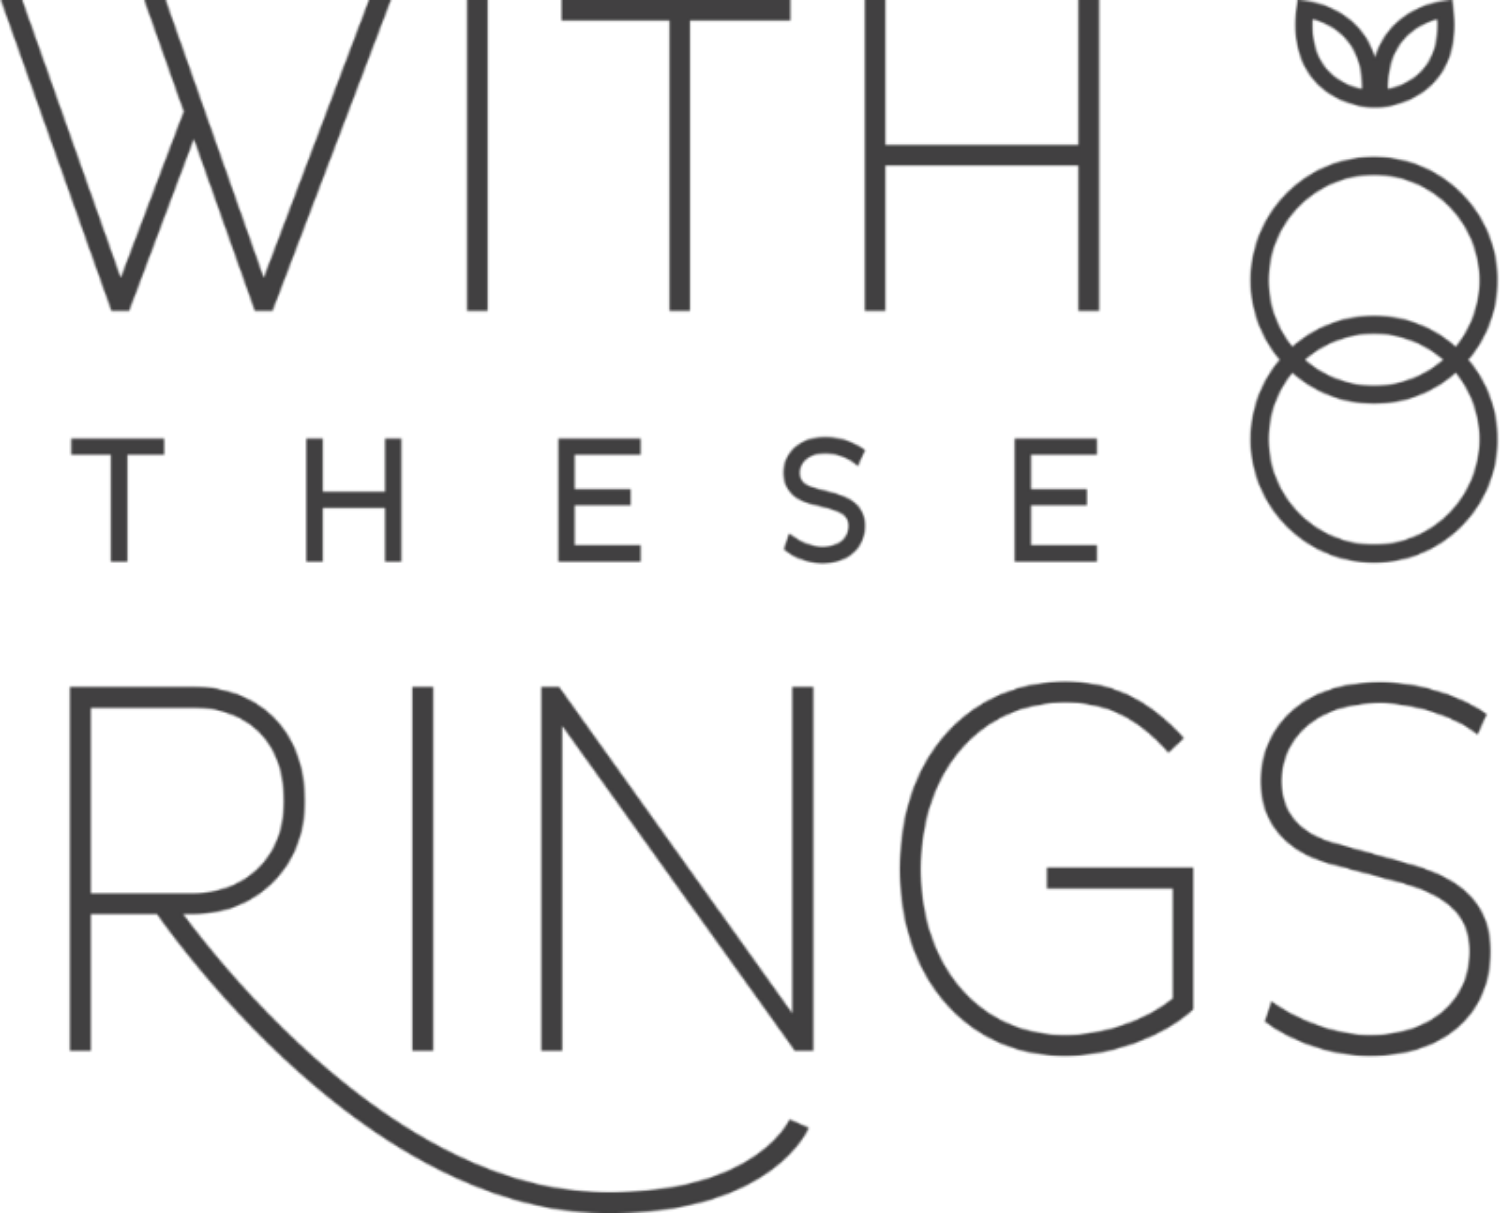 with these rings wedding rings text logo